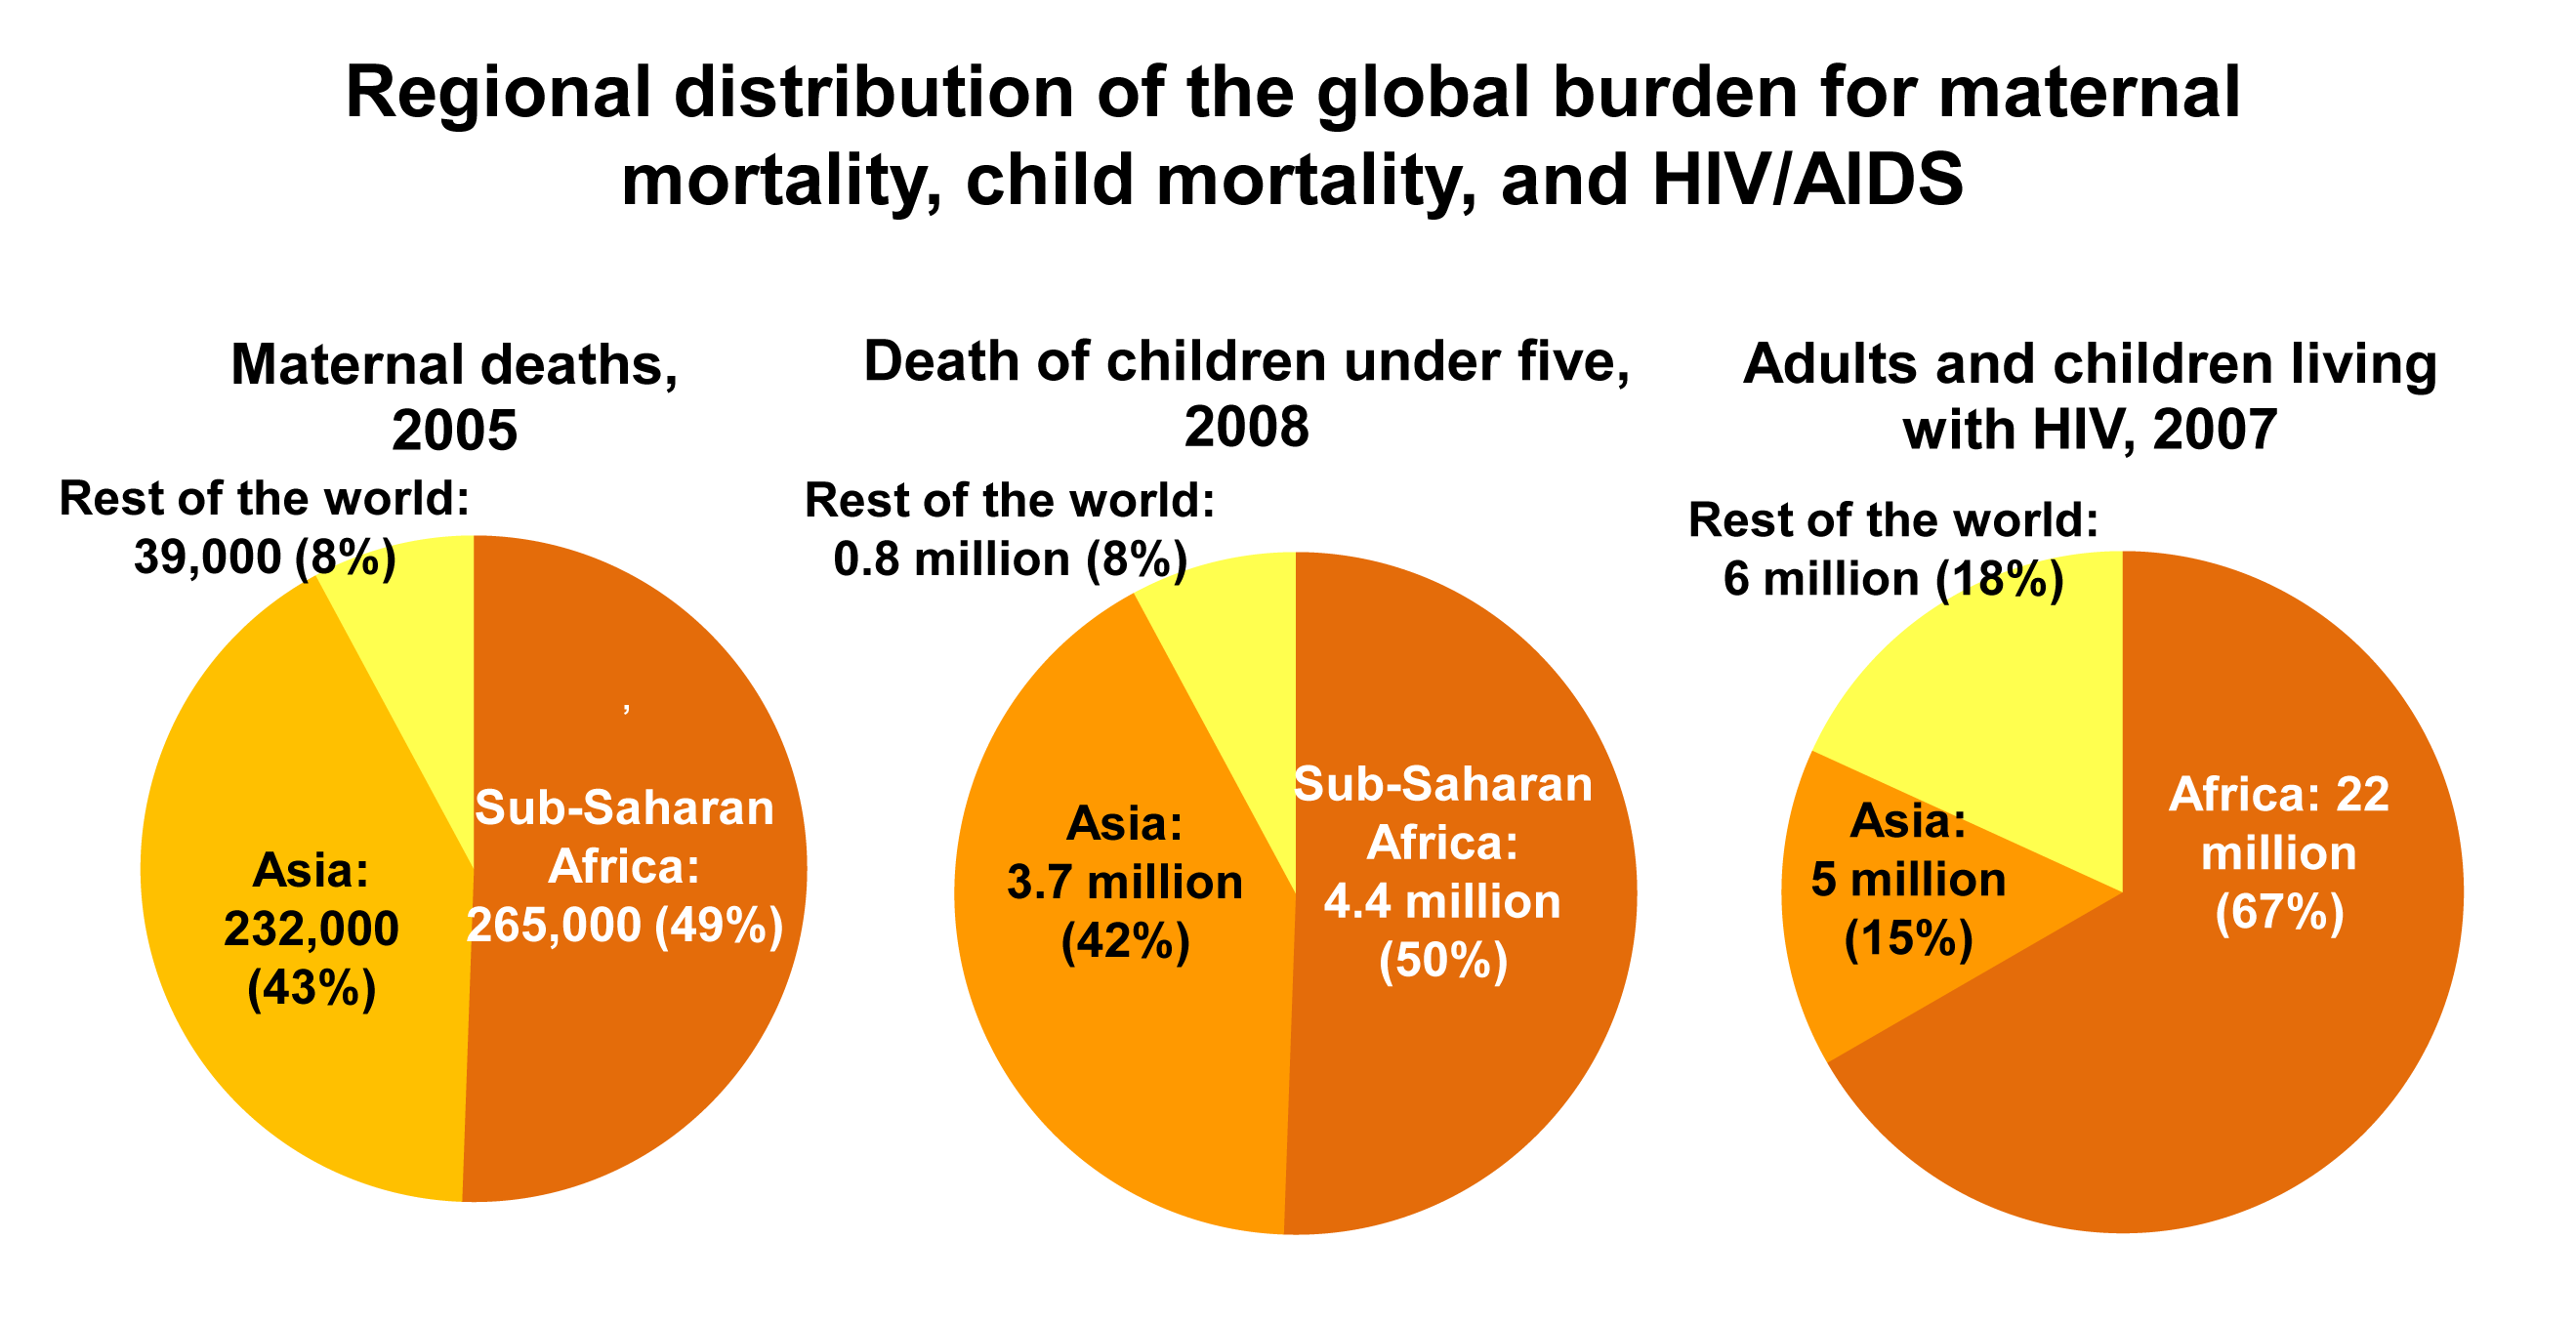 Regional distribution of the global burden for maternal mortality, child mortality, and HIV.